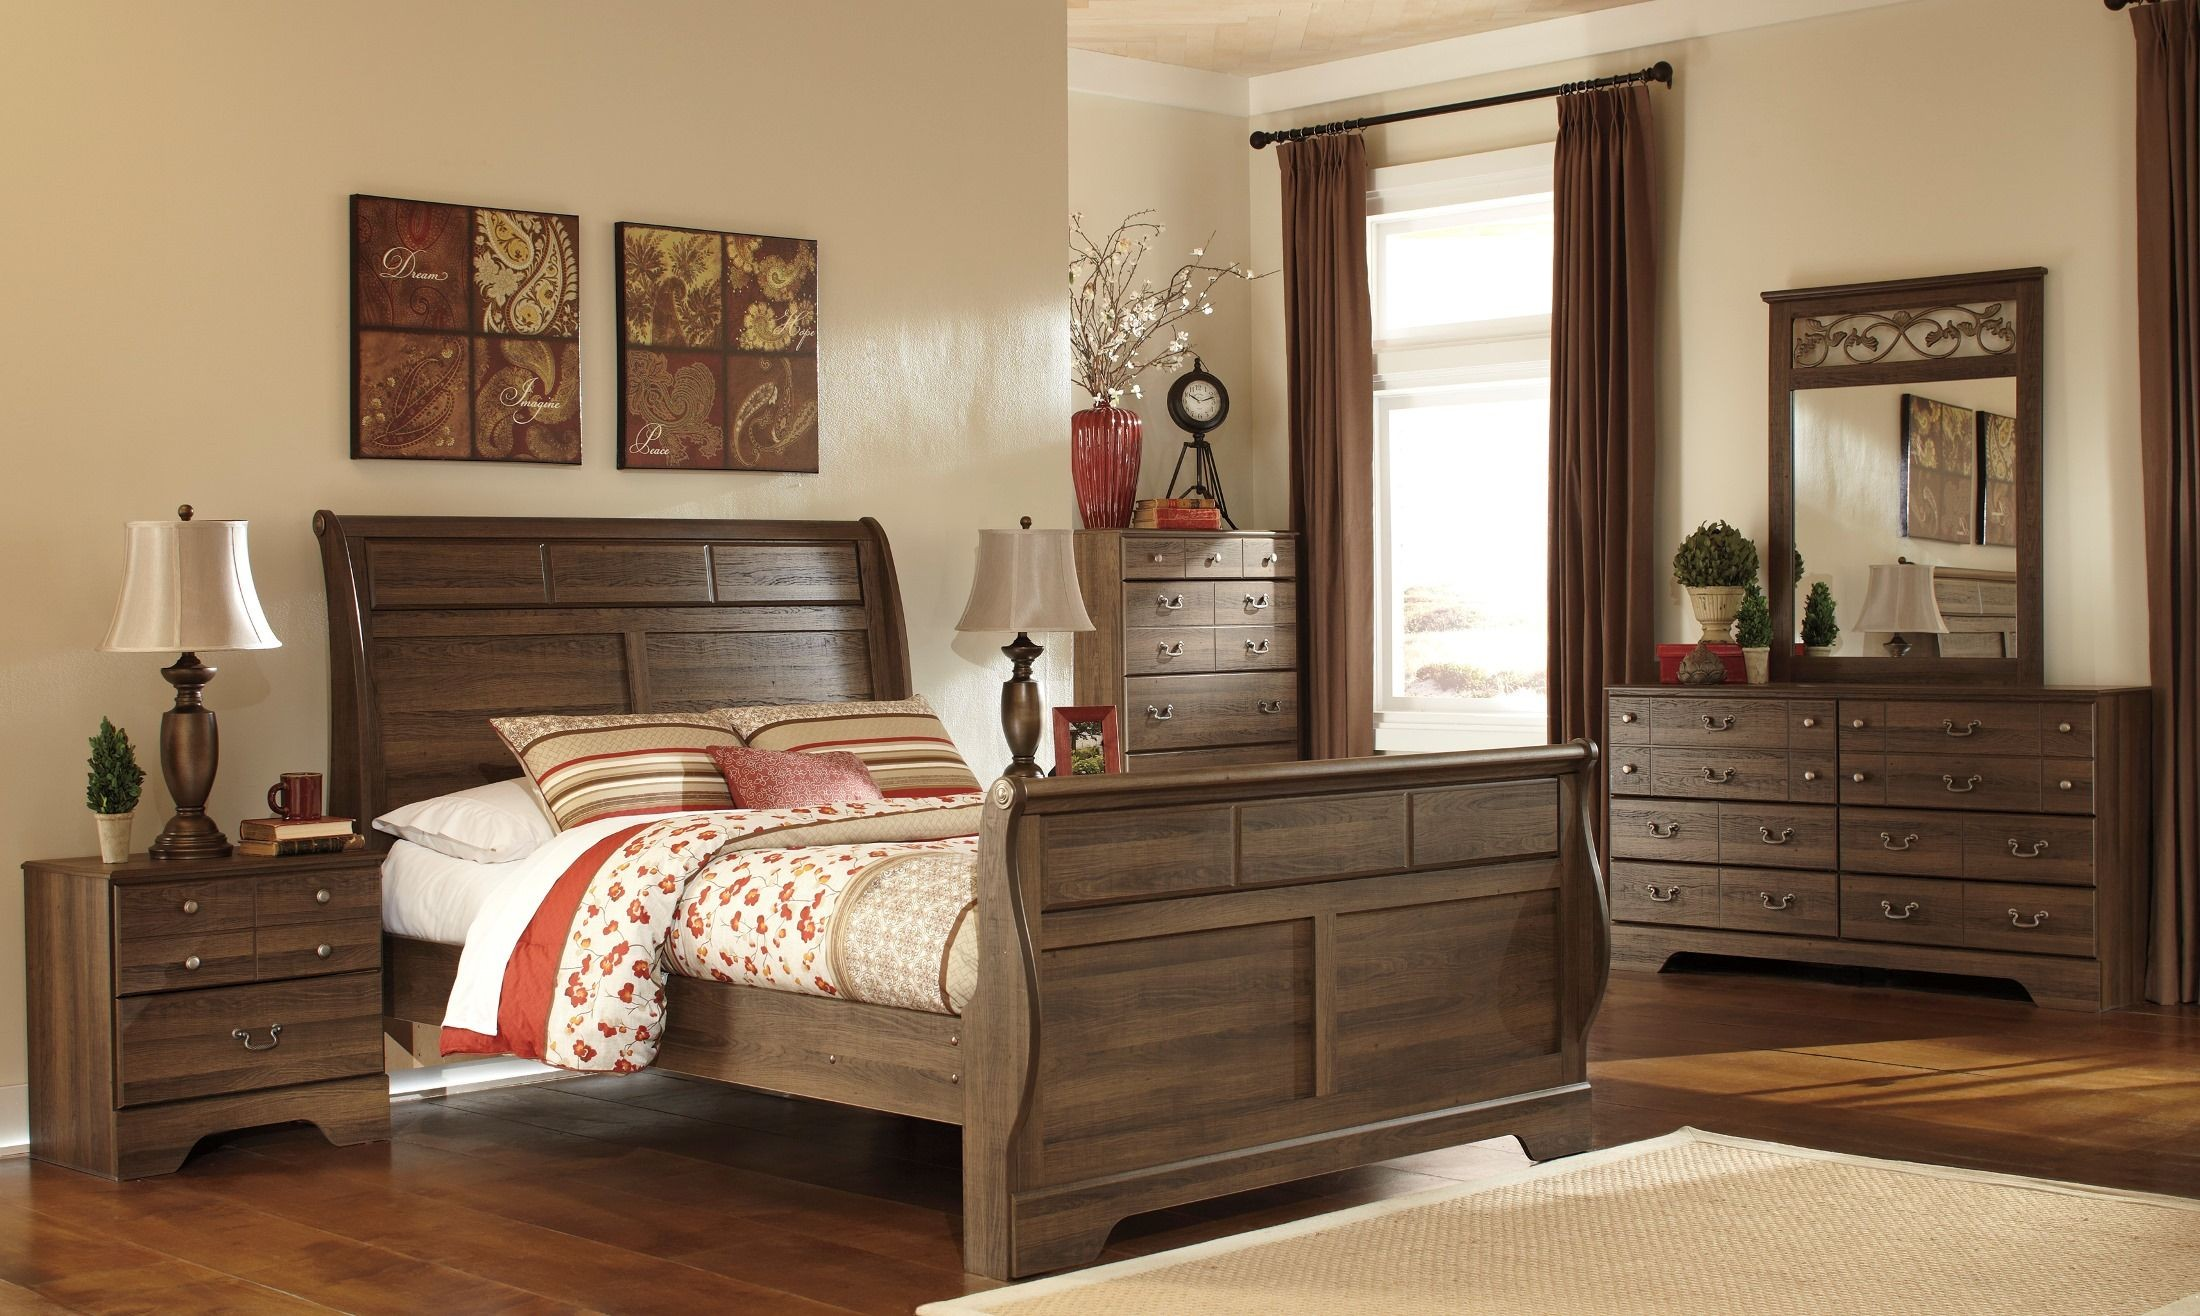 Allymore Sleigh Bedroom Set From Ashley B216 65 63 86